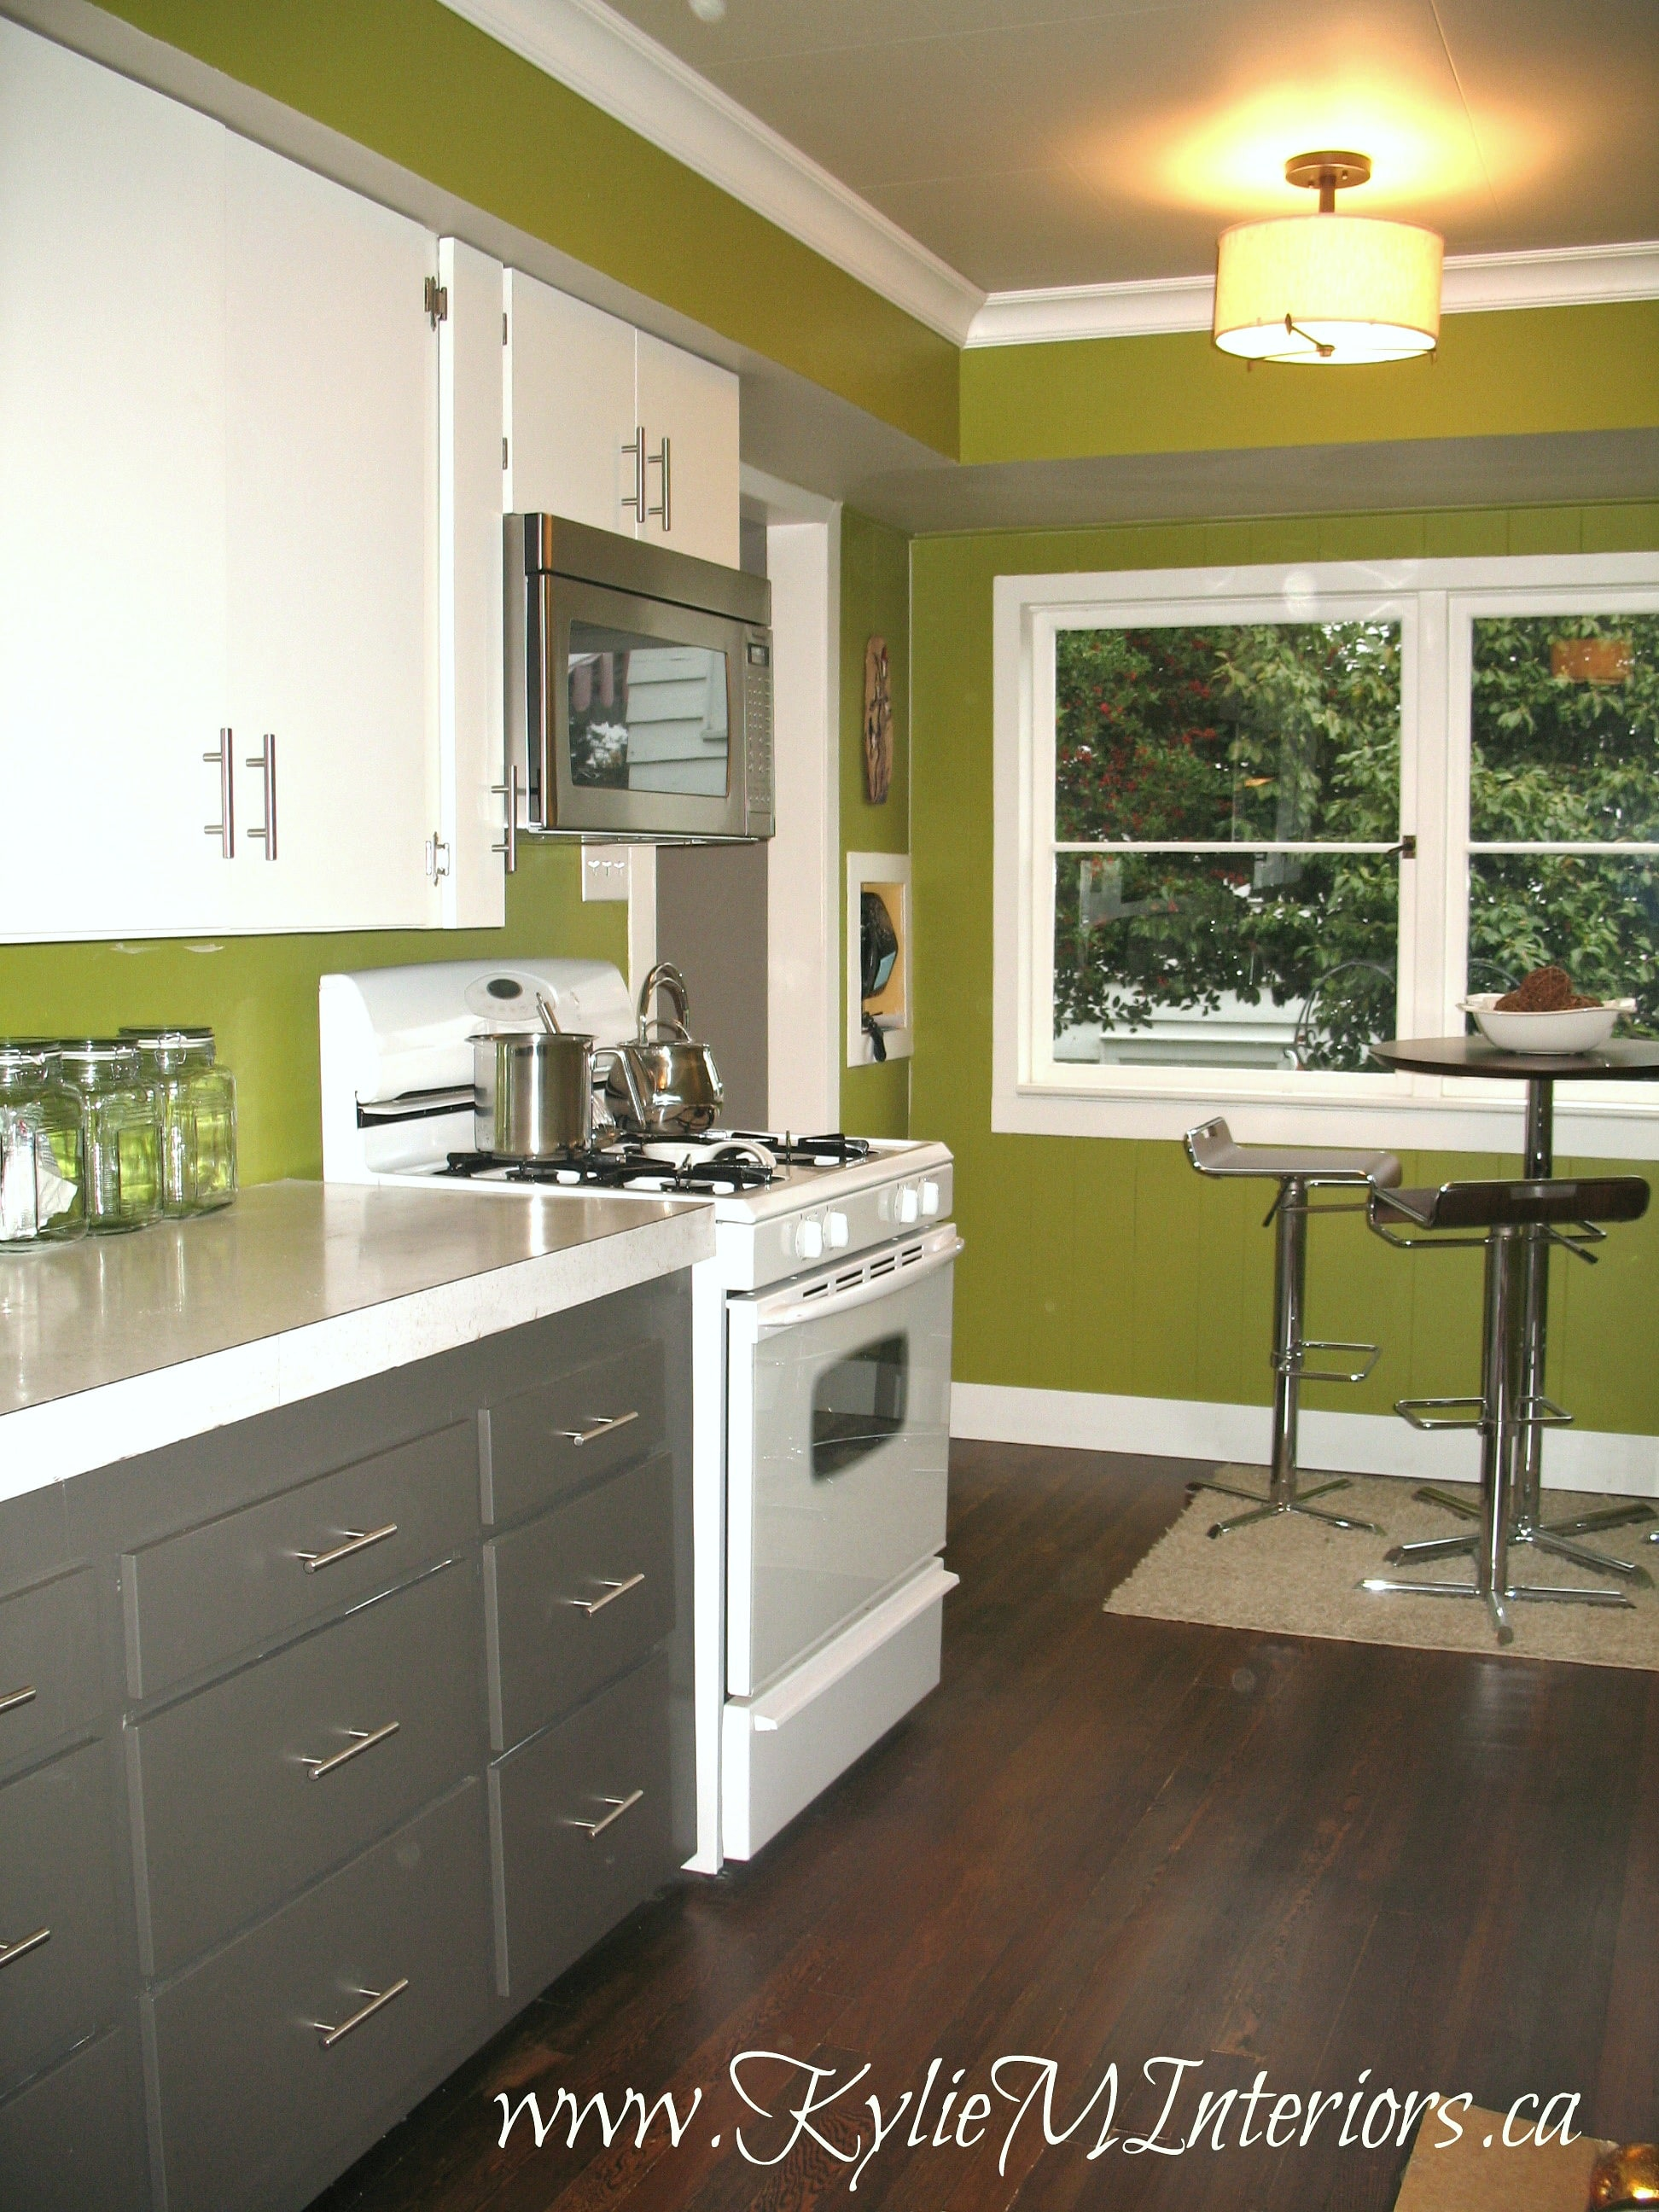 Old laminate kitchen cabinets painted with Benjamin Moore Cloud White, Amherst Gray. Dark fir ...